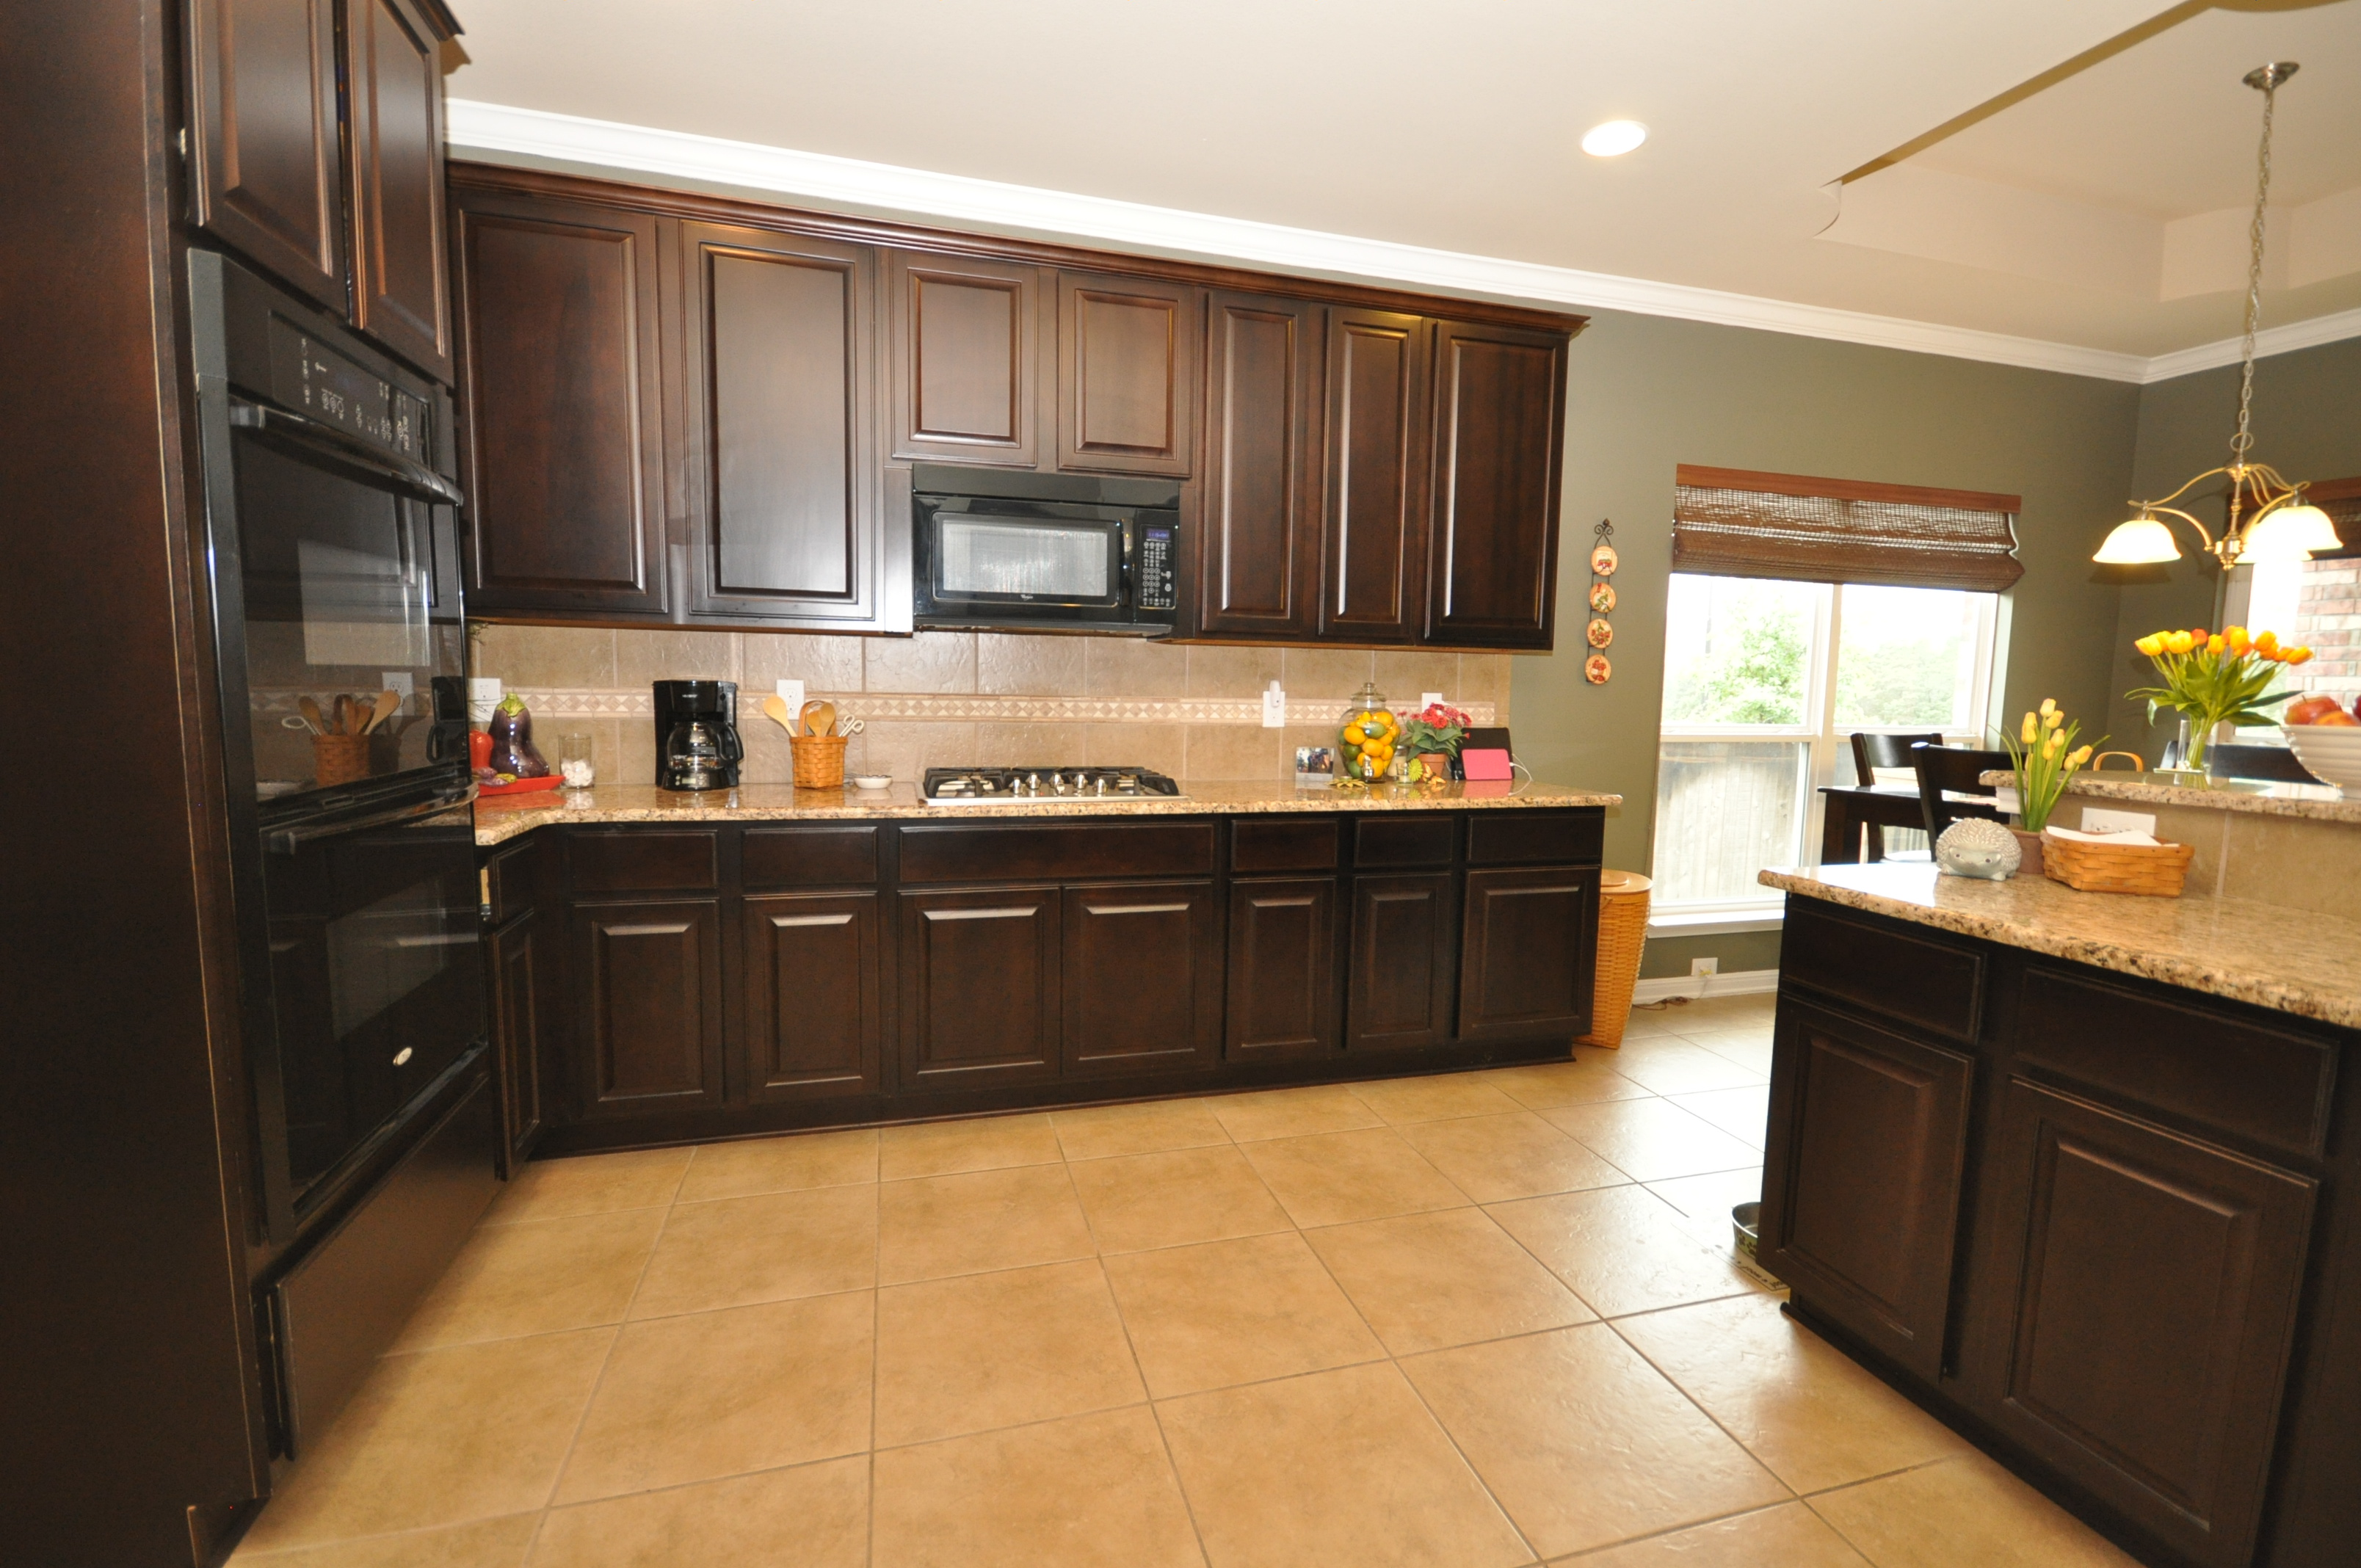 Cibolo canyon ventanas energy efficient home for sale in for Kitchen in the canyon